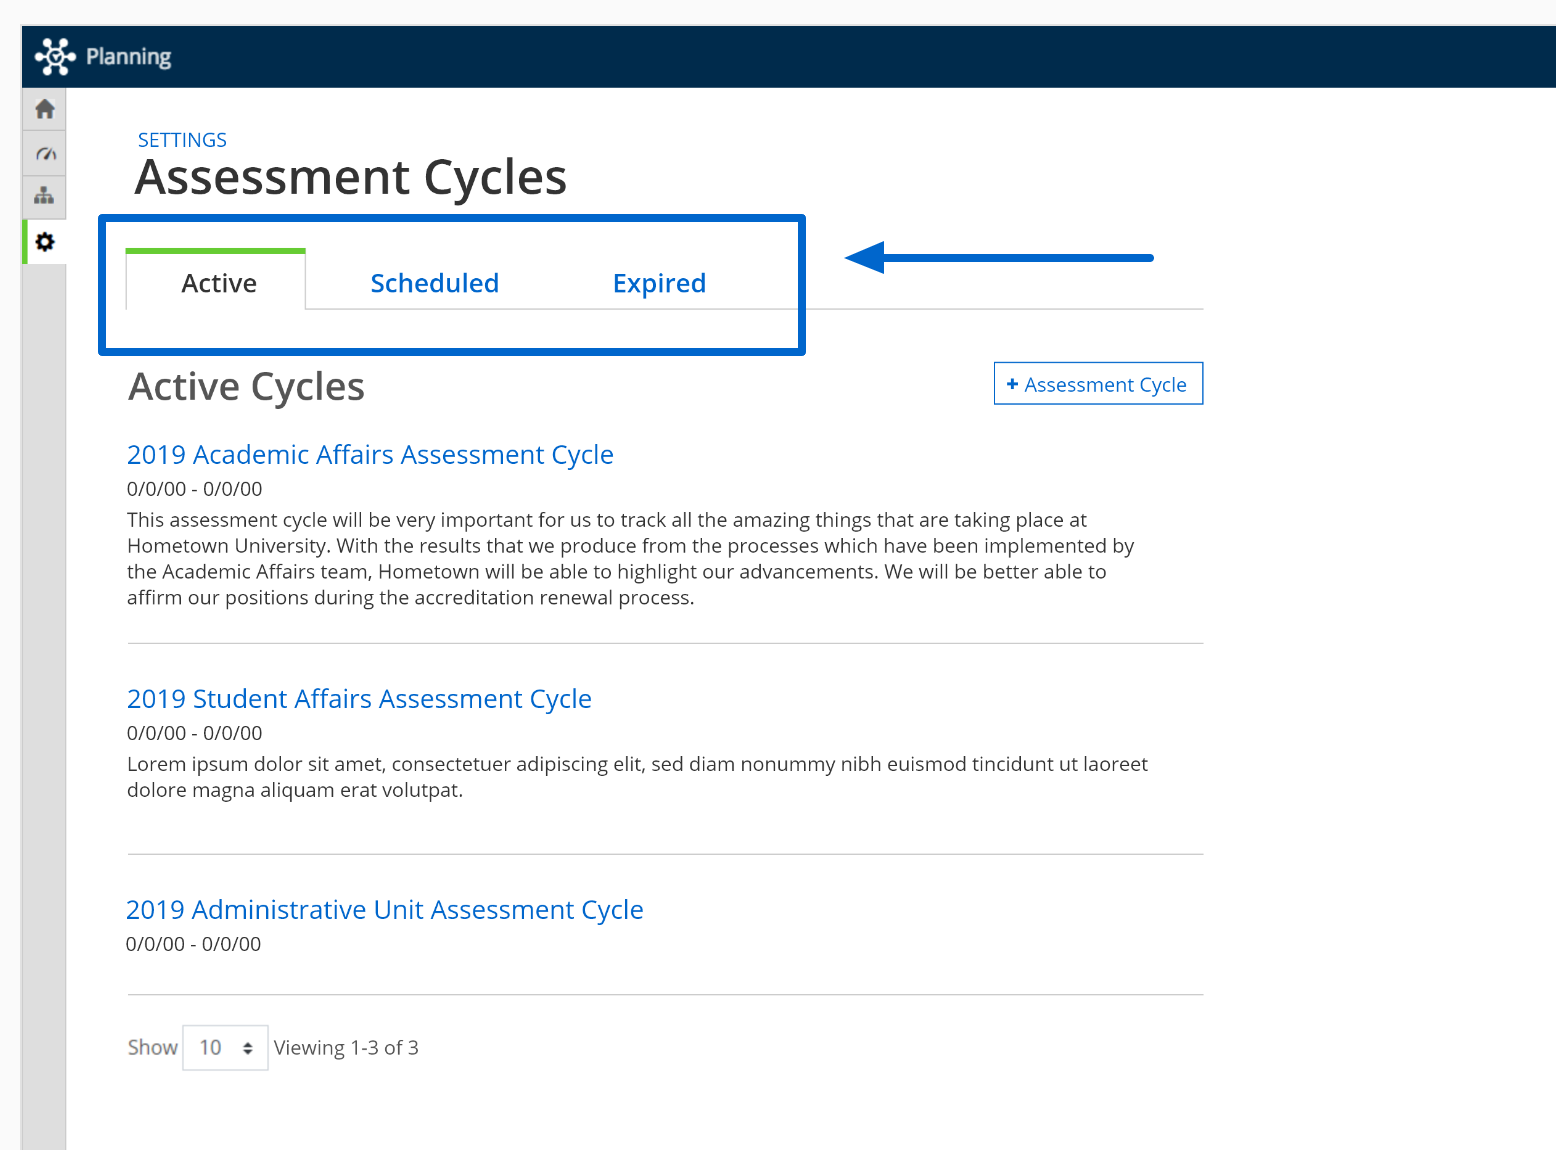 Assessment_cycle_tabs.png